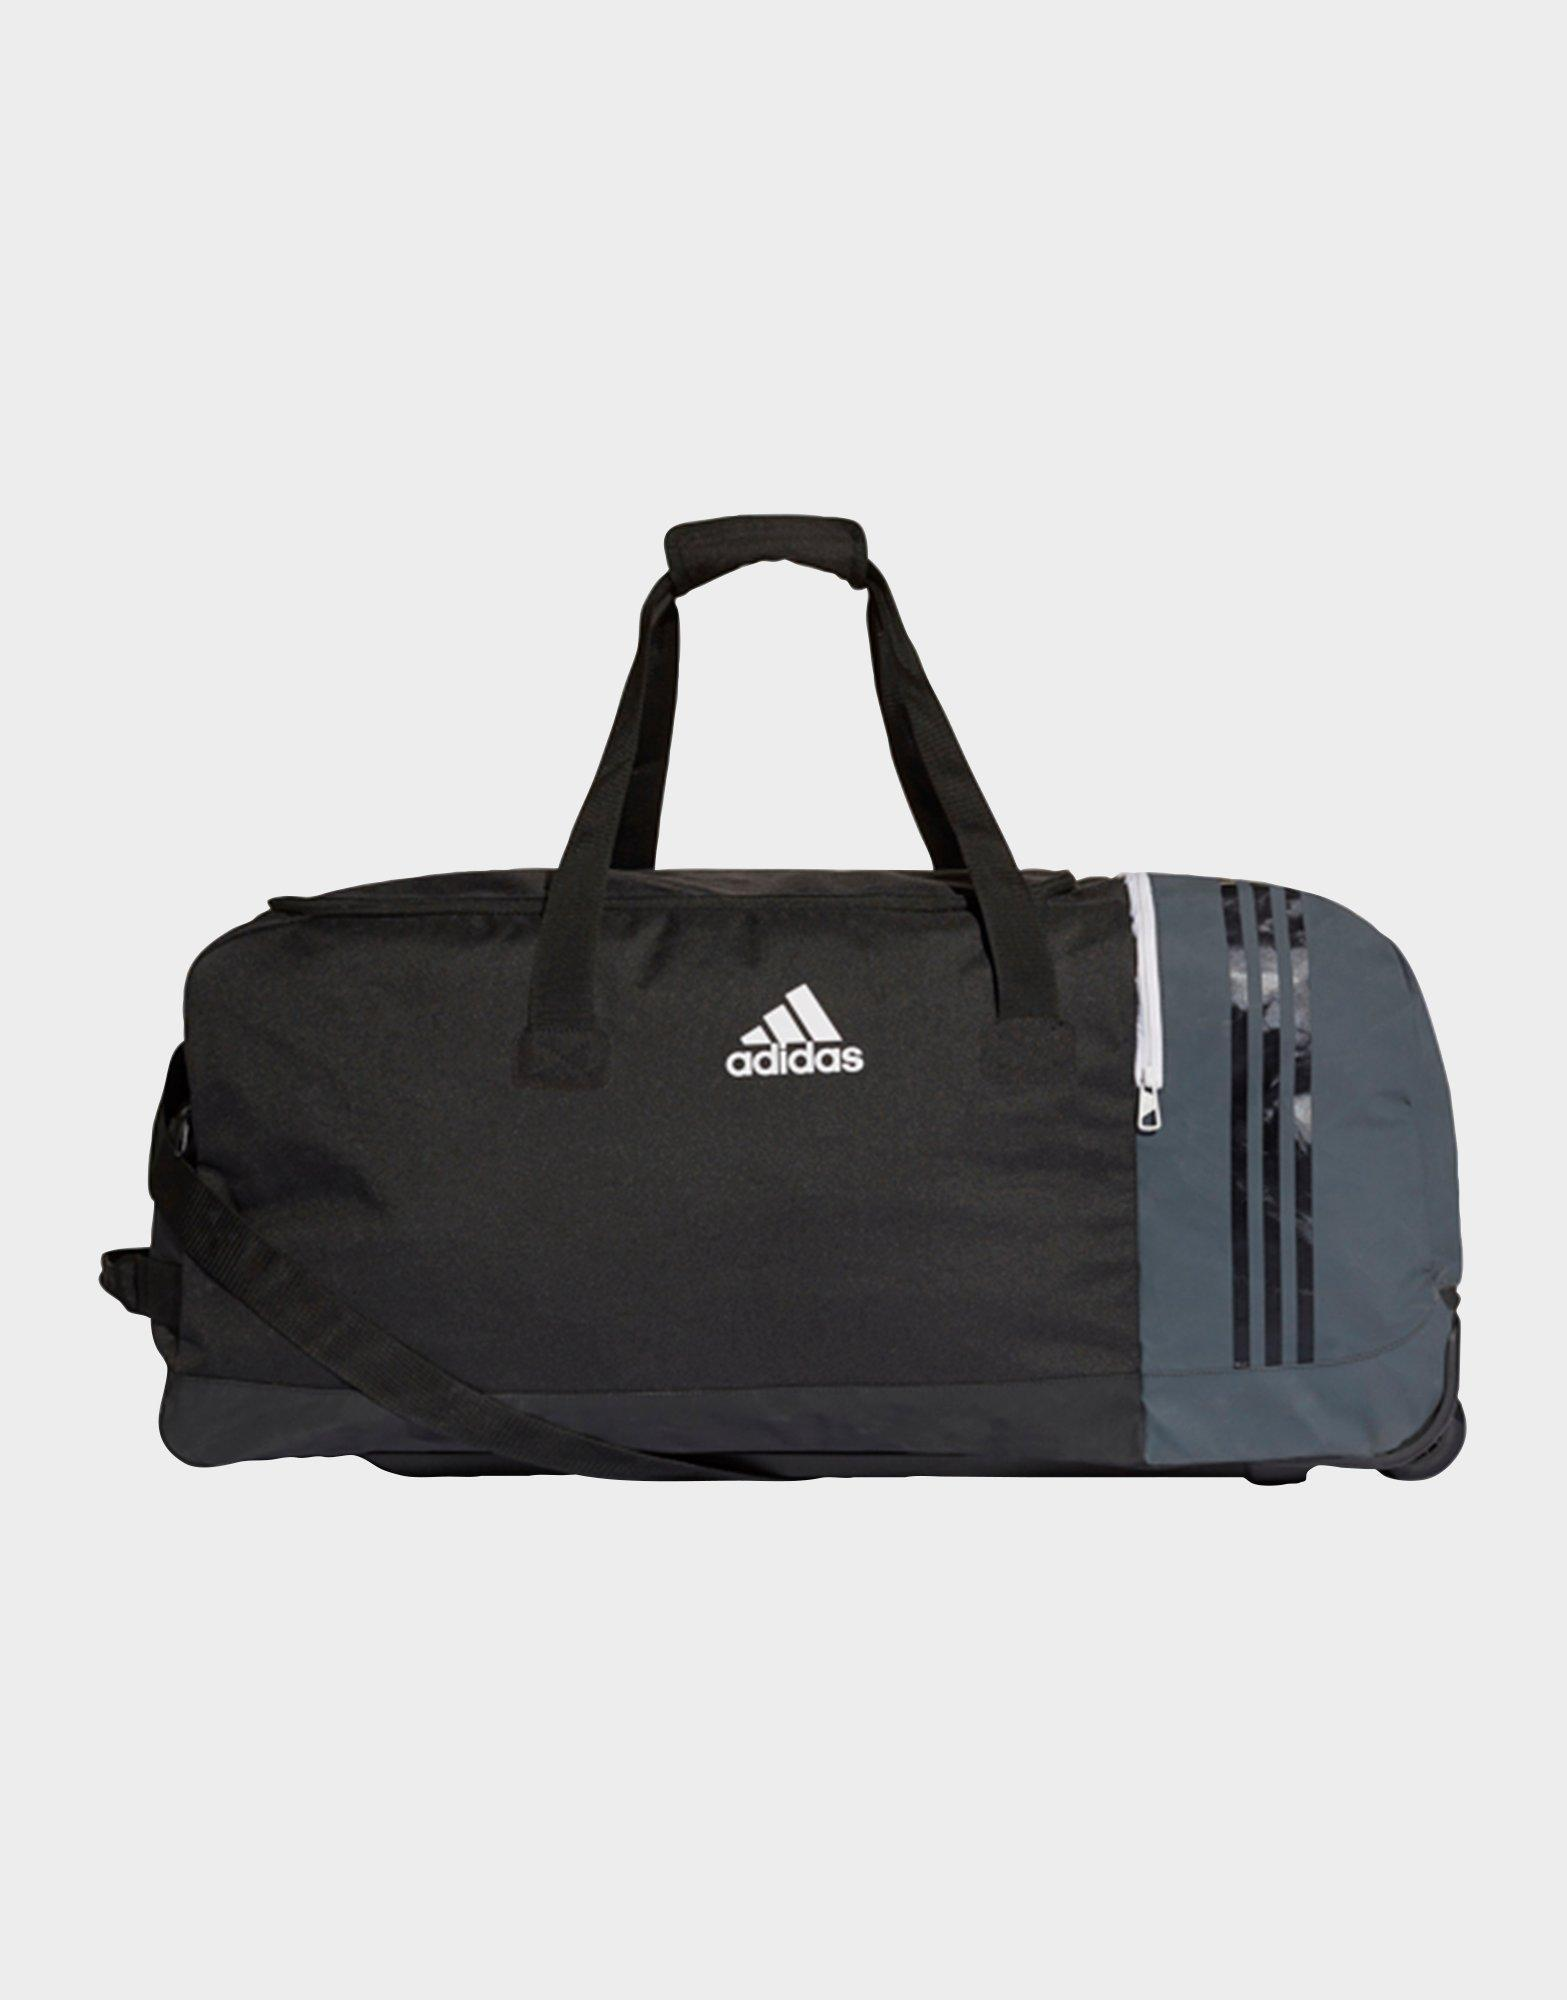 cc43a1415b Lyst - adidas Tiro Team Bag With Wheels Xl in Black for Men